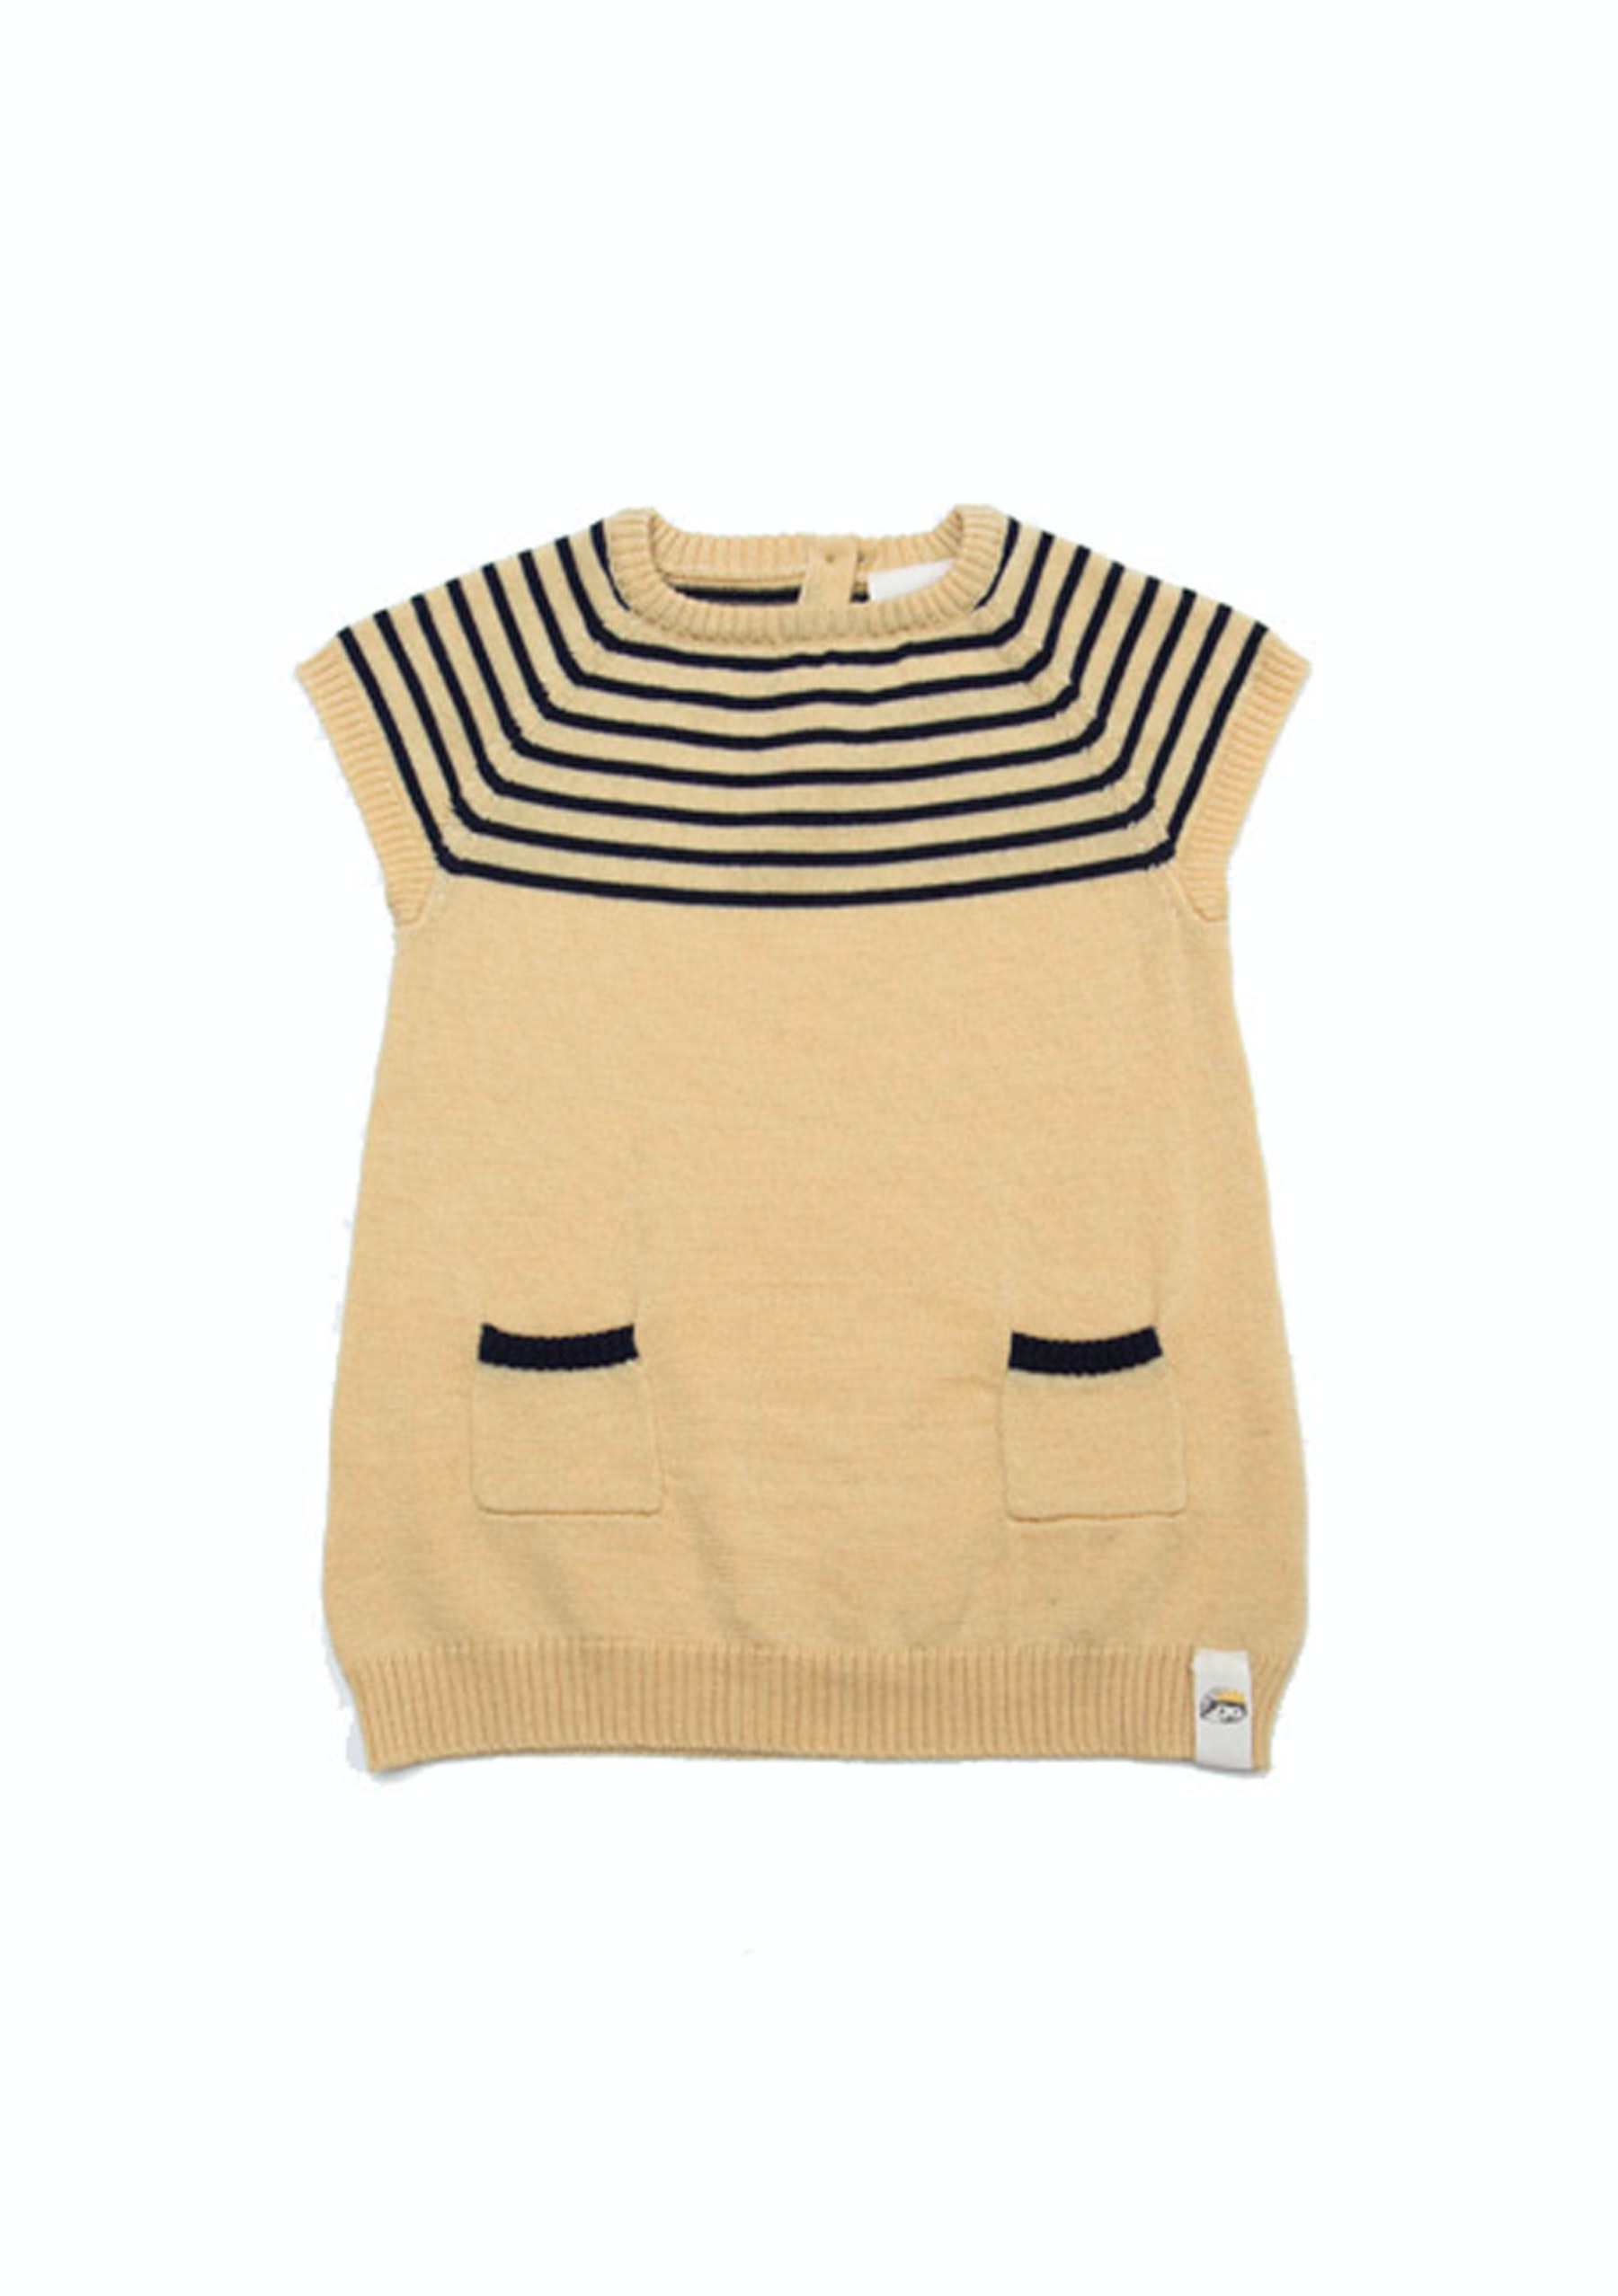 Mamoo & Lou Stripe Dress Yellow Baby Clothes & More ceit